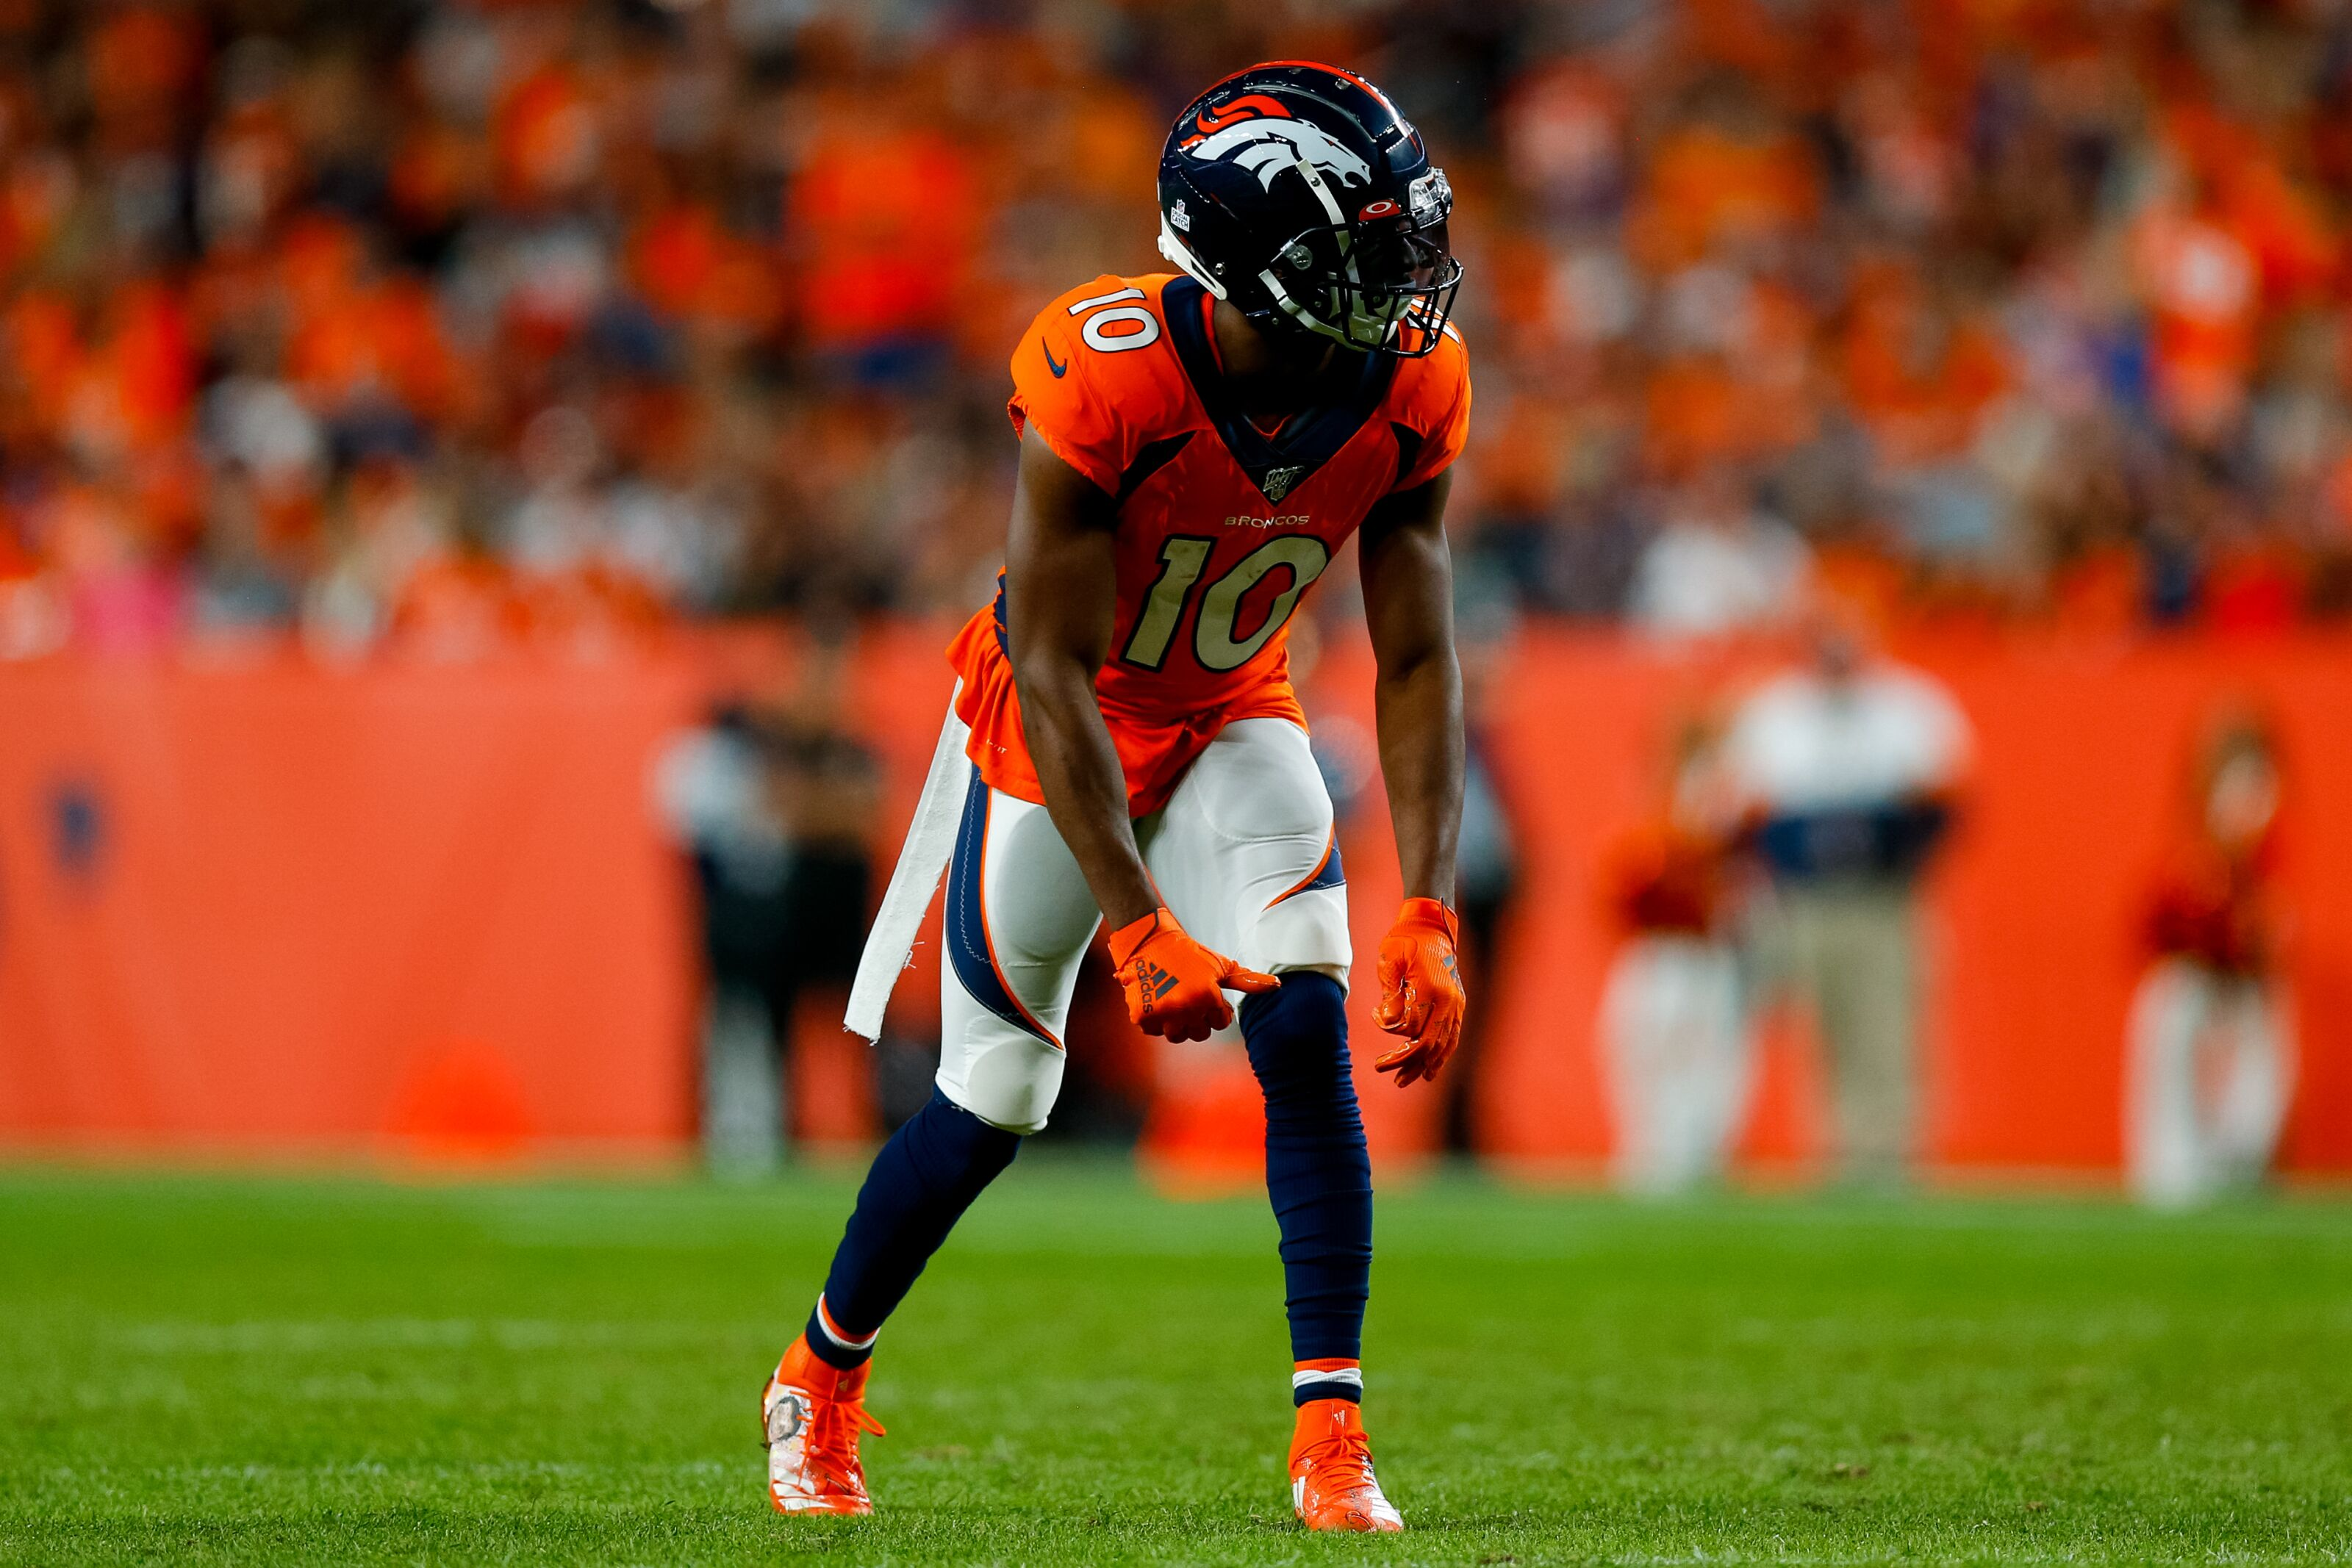 49ers one-upped the Patriots by trading for Emmanuel Sanders